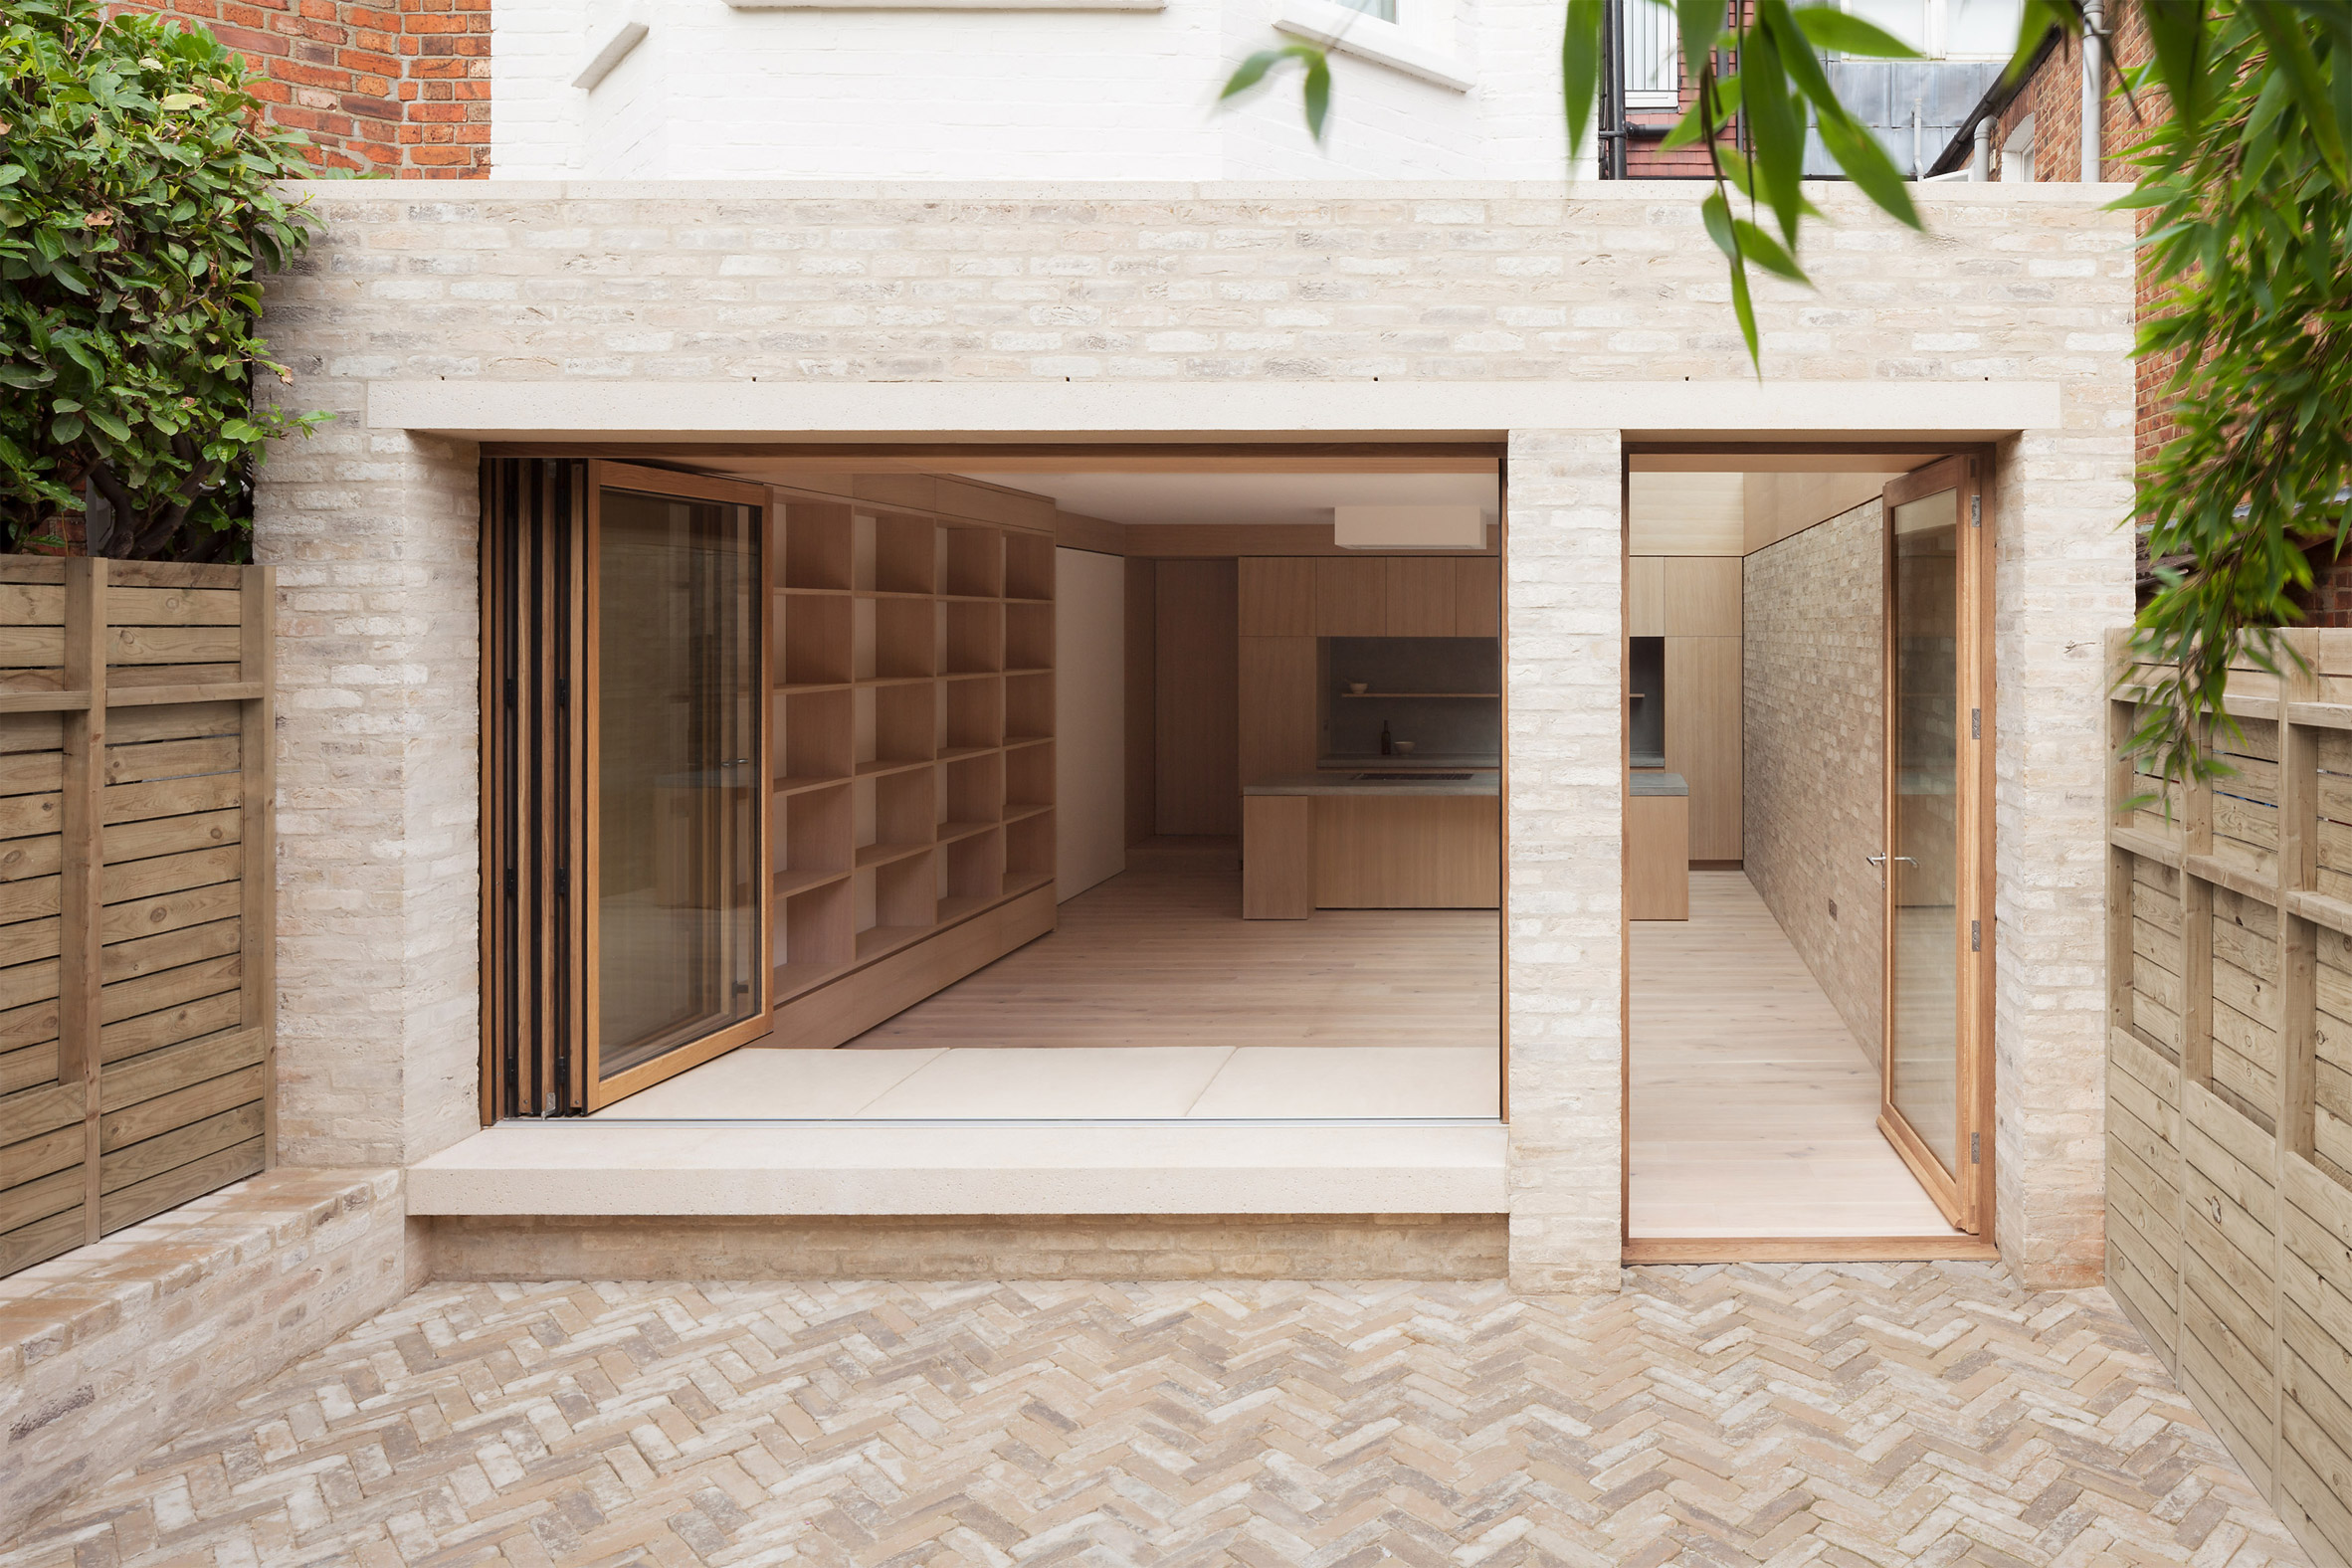 Erbar Mattes adds pale brick extension to Edwardian house in north London